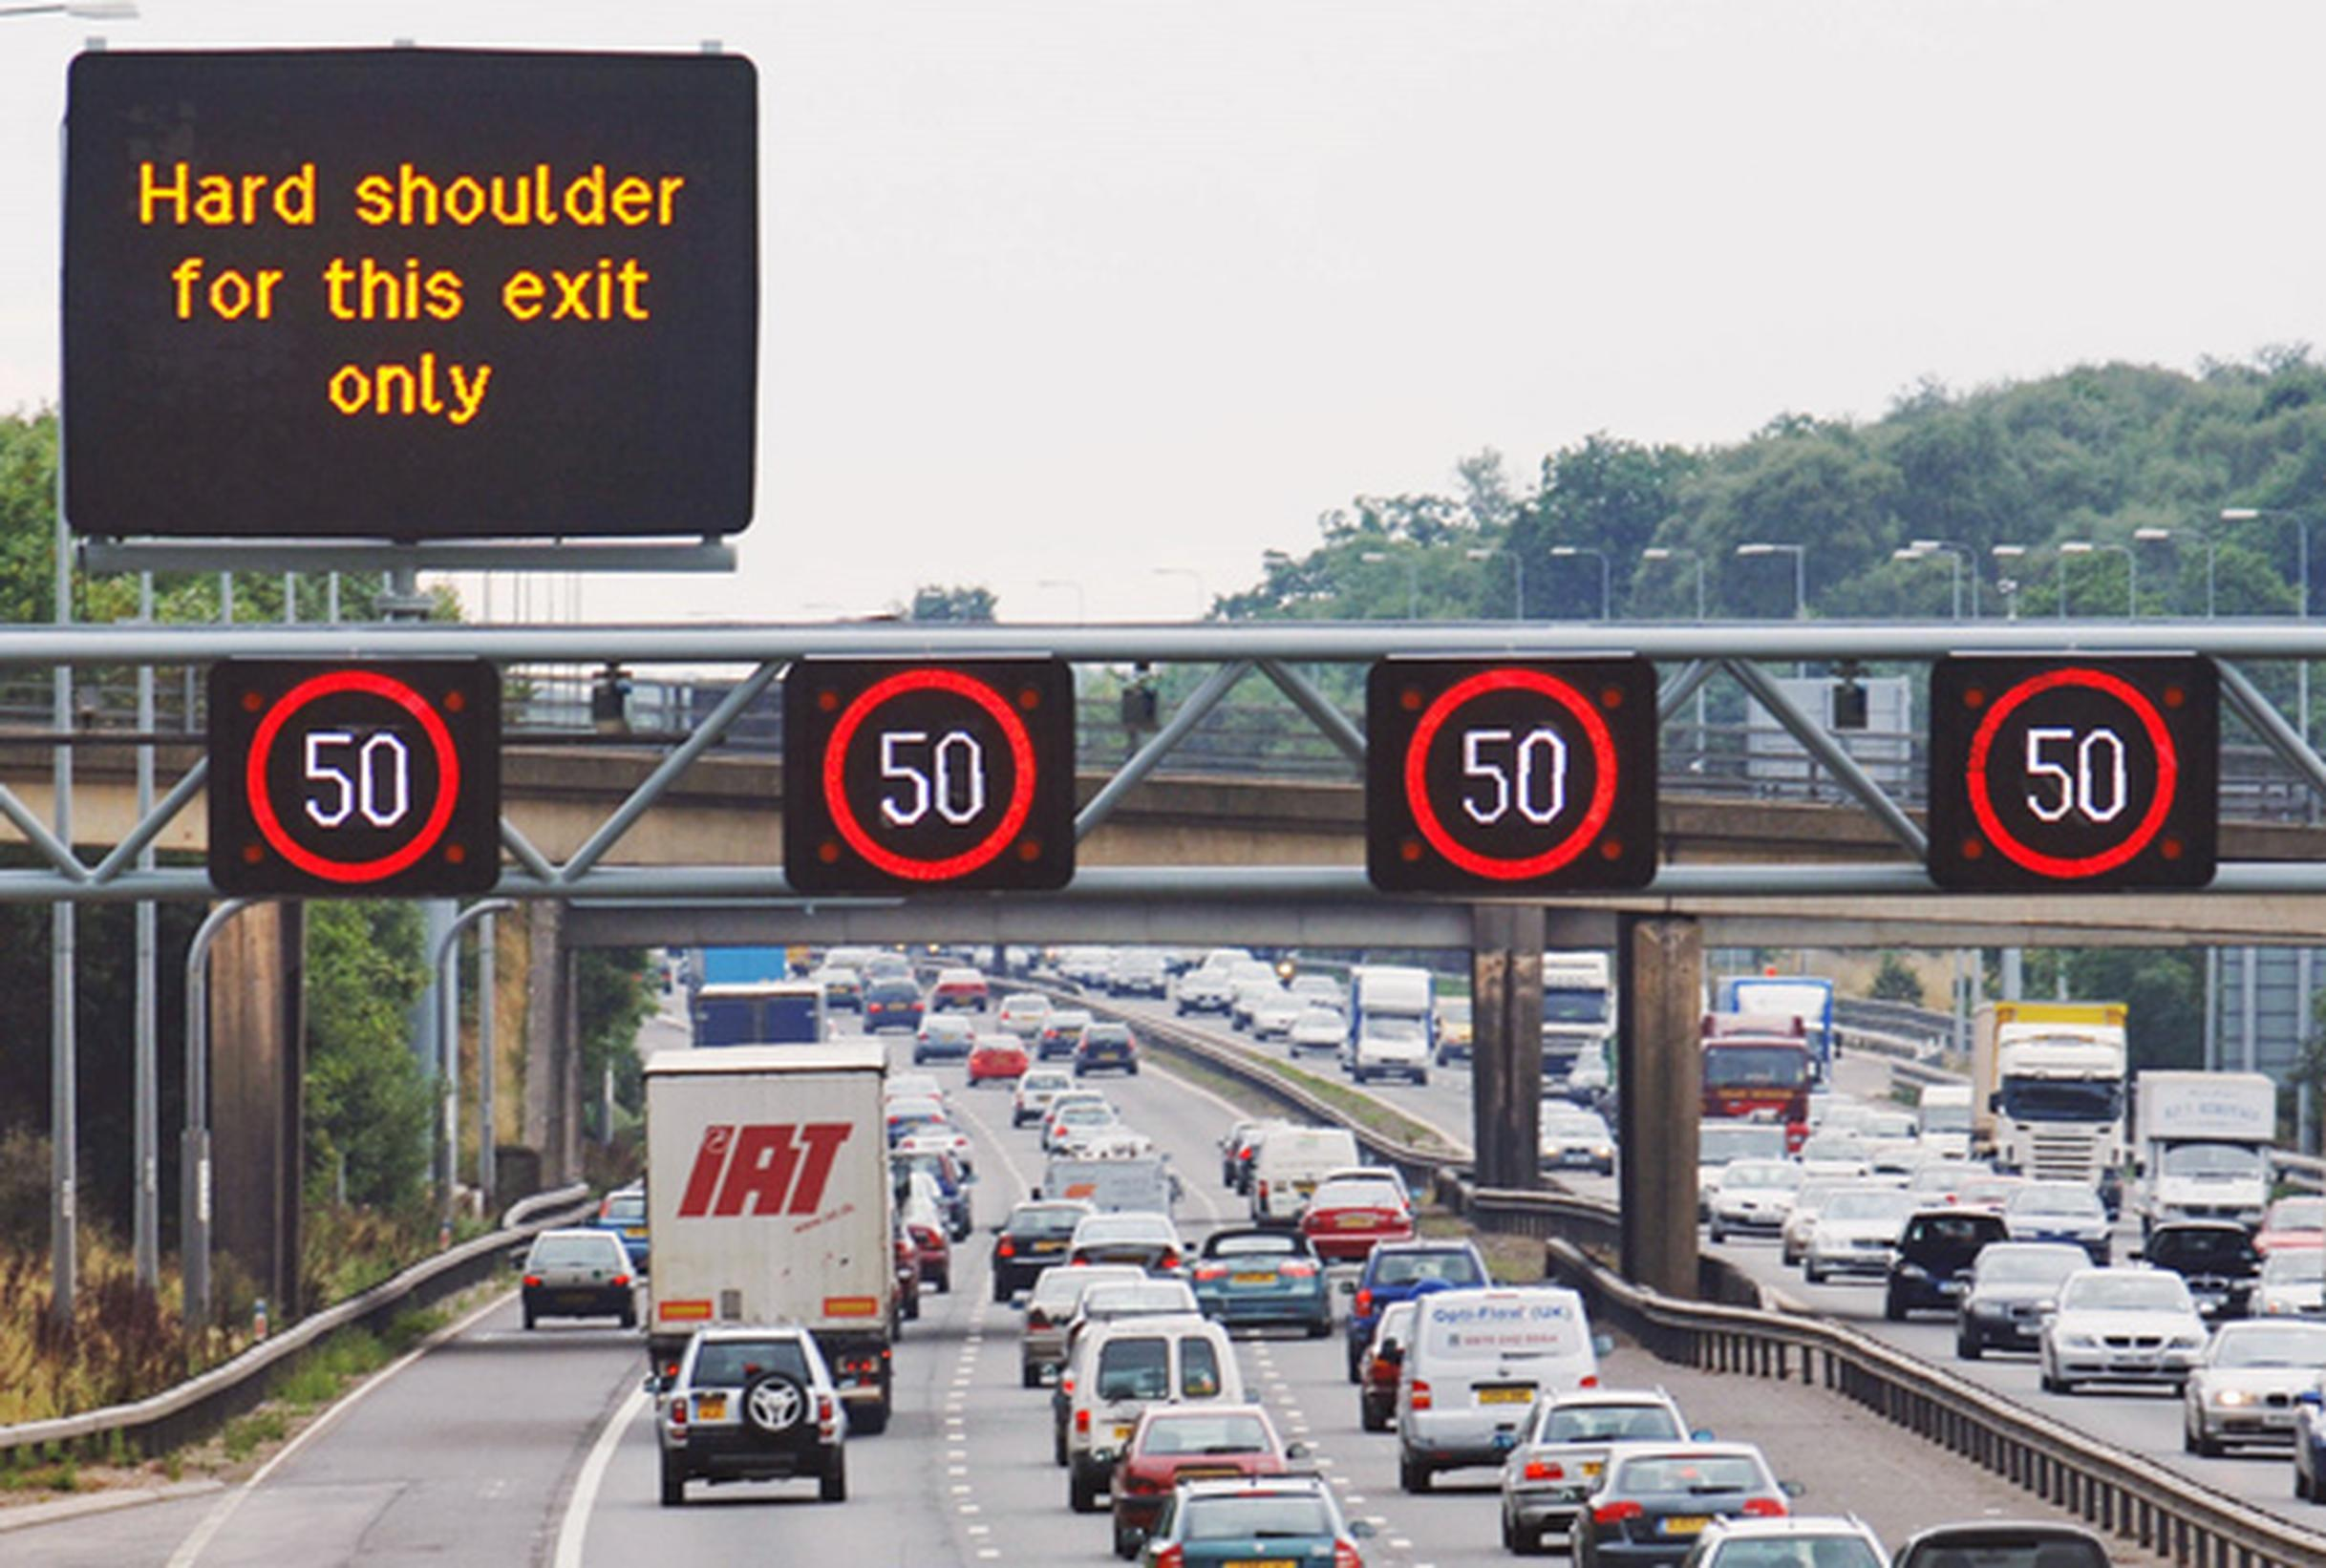 The DfT asks how an ALKS?car would recognise a variable speed limit displayed on a gantry